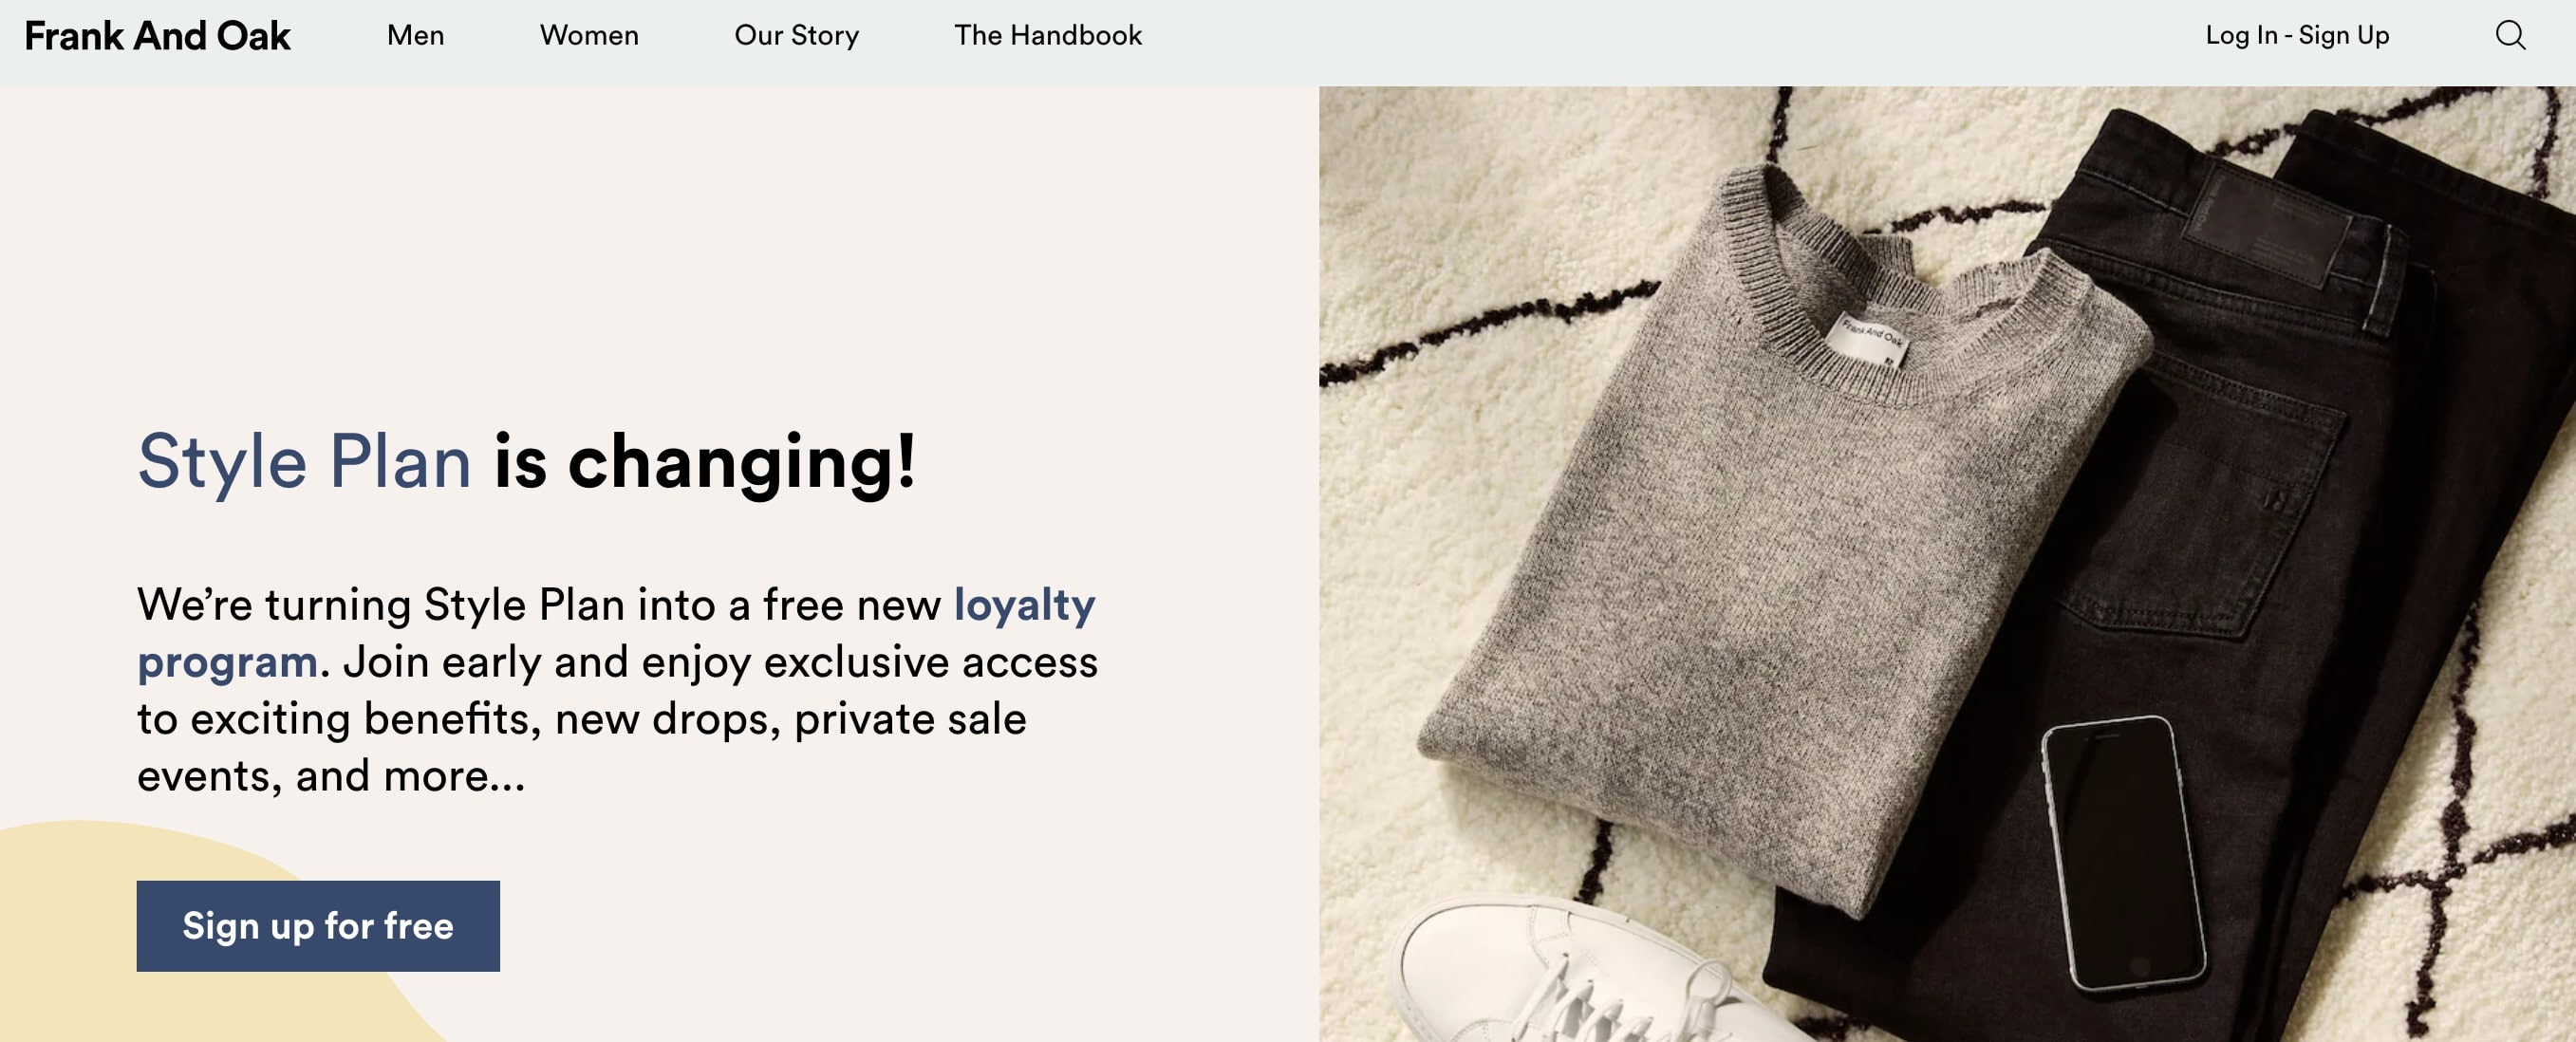 Frank and Oak subscription on their website